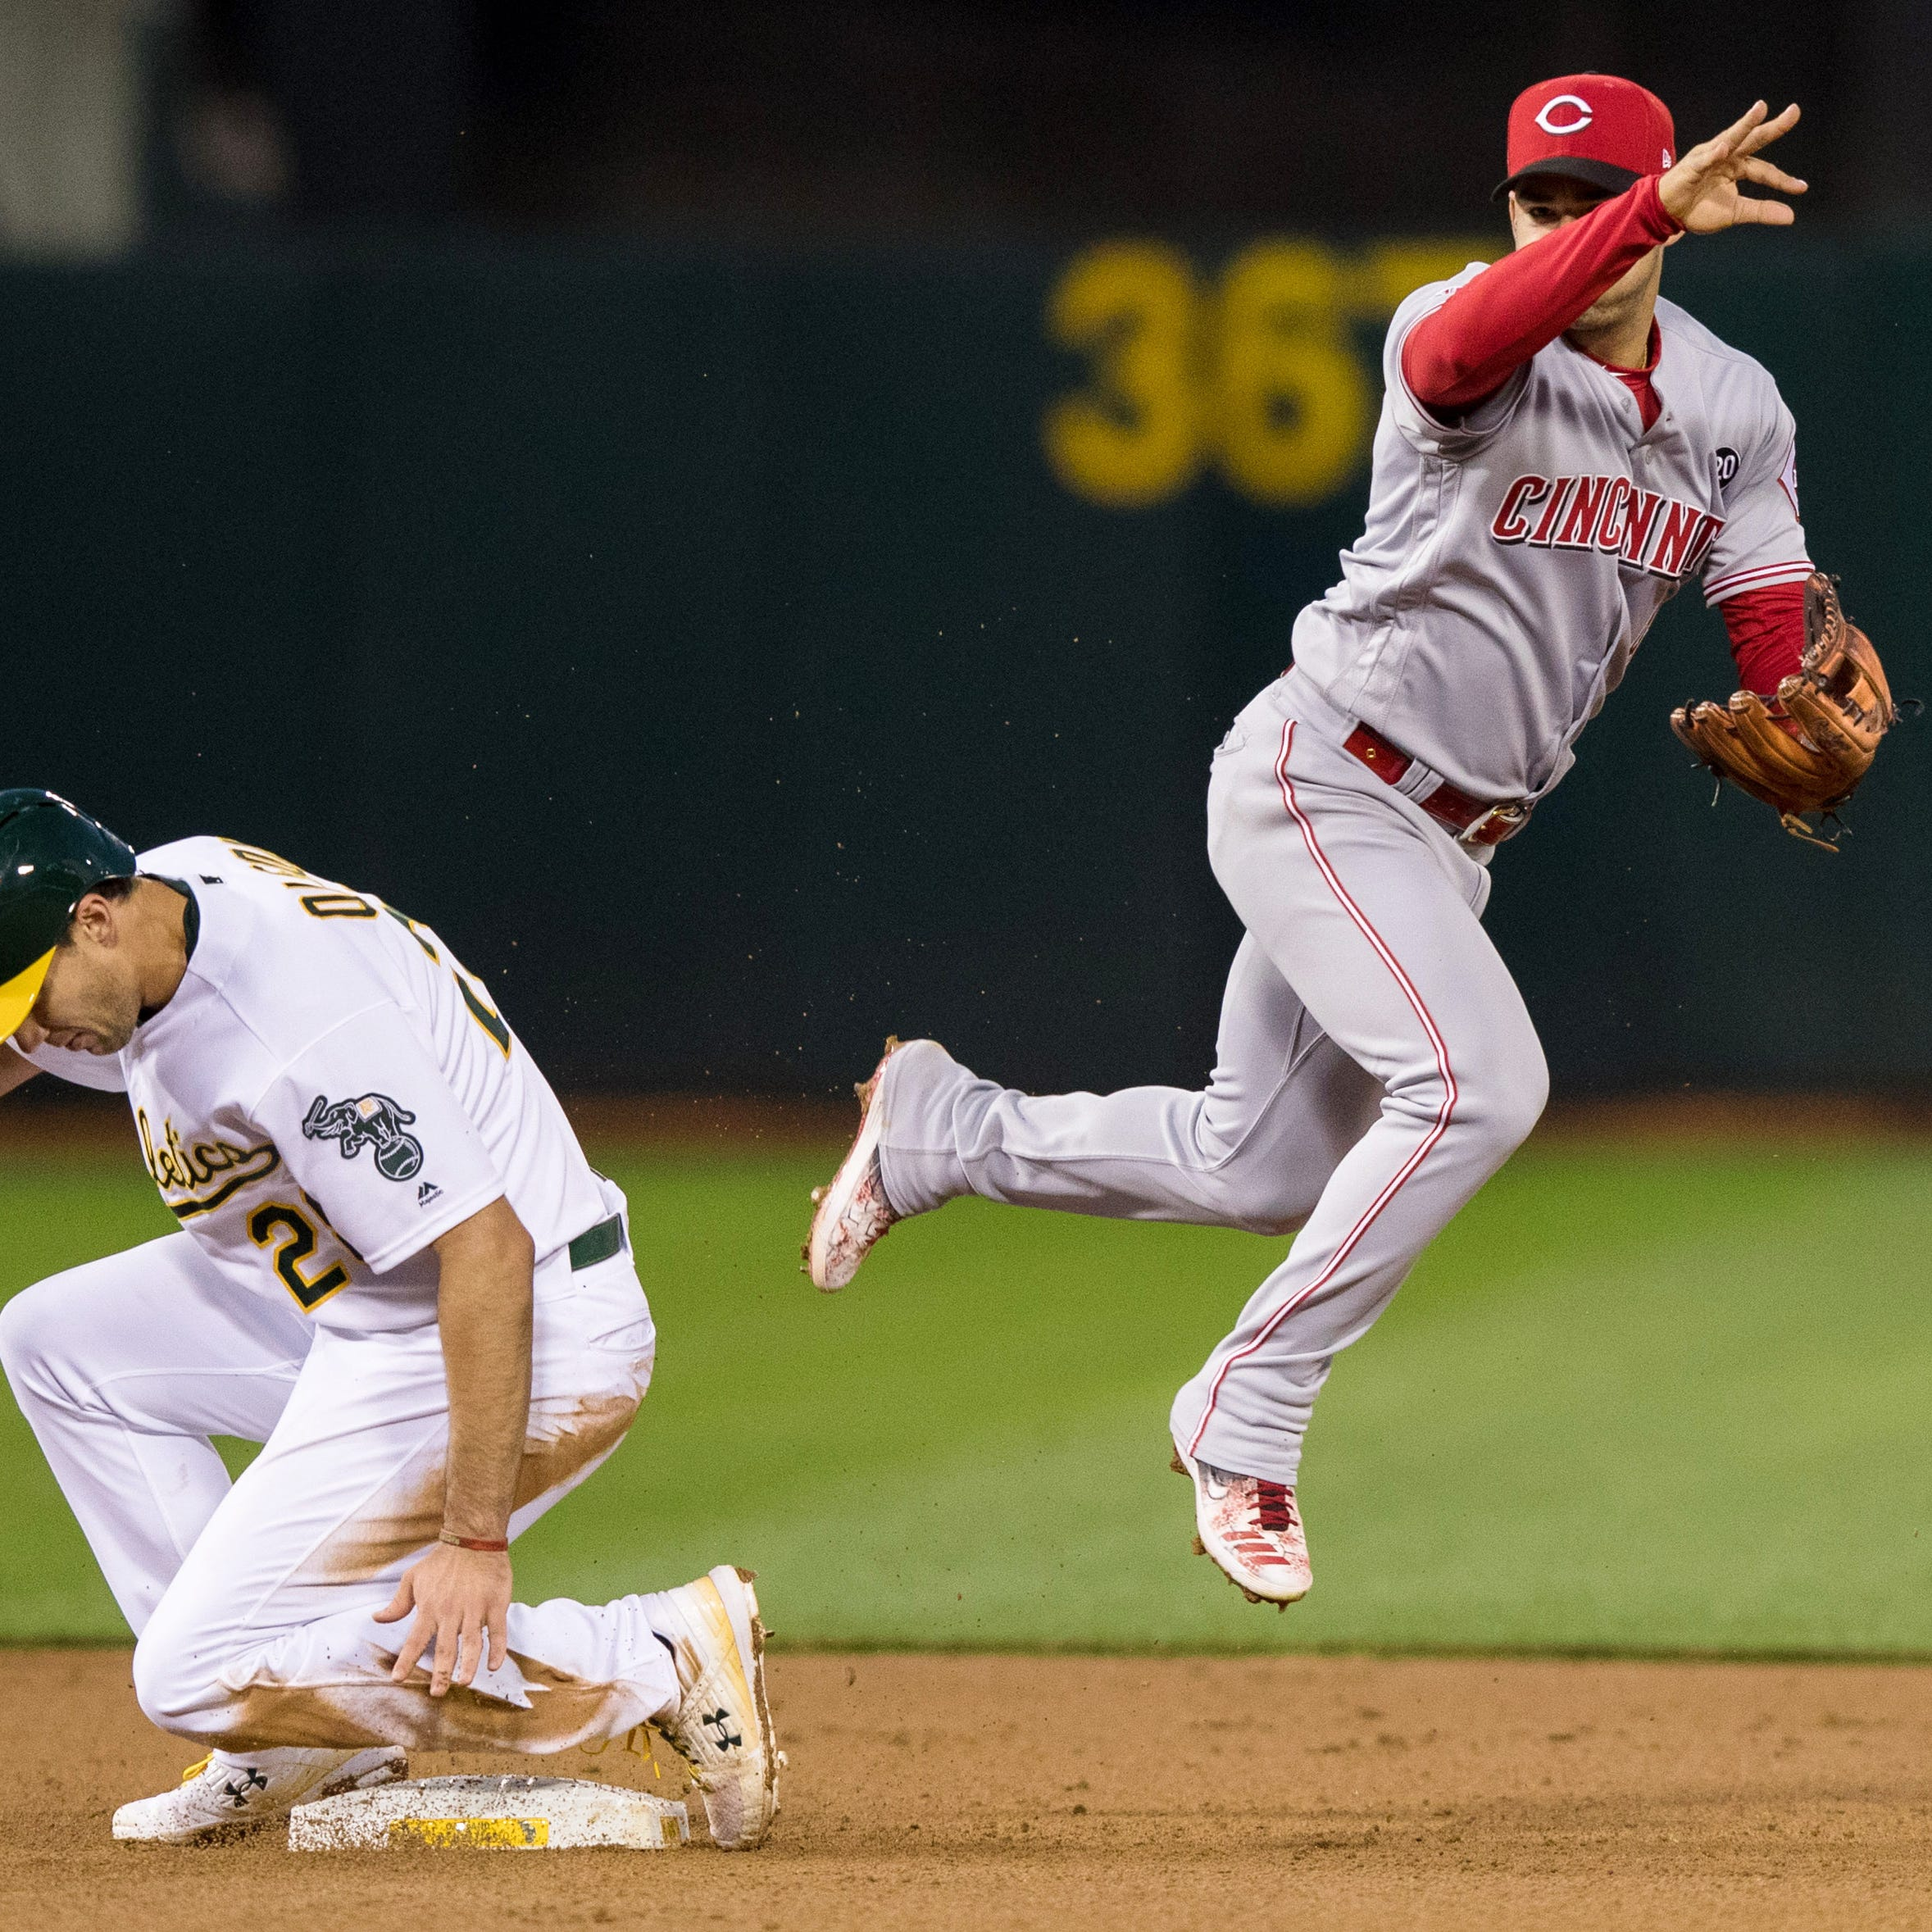 'He's the best I've ever seen': José Iglesias impresses Cincinnati Reds with his defense